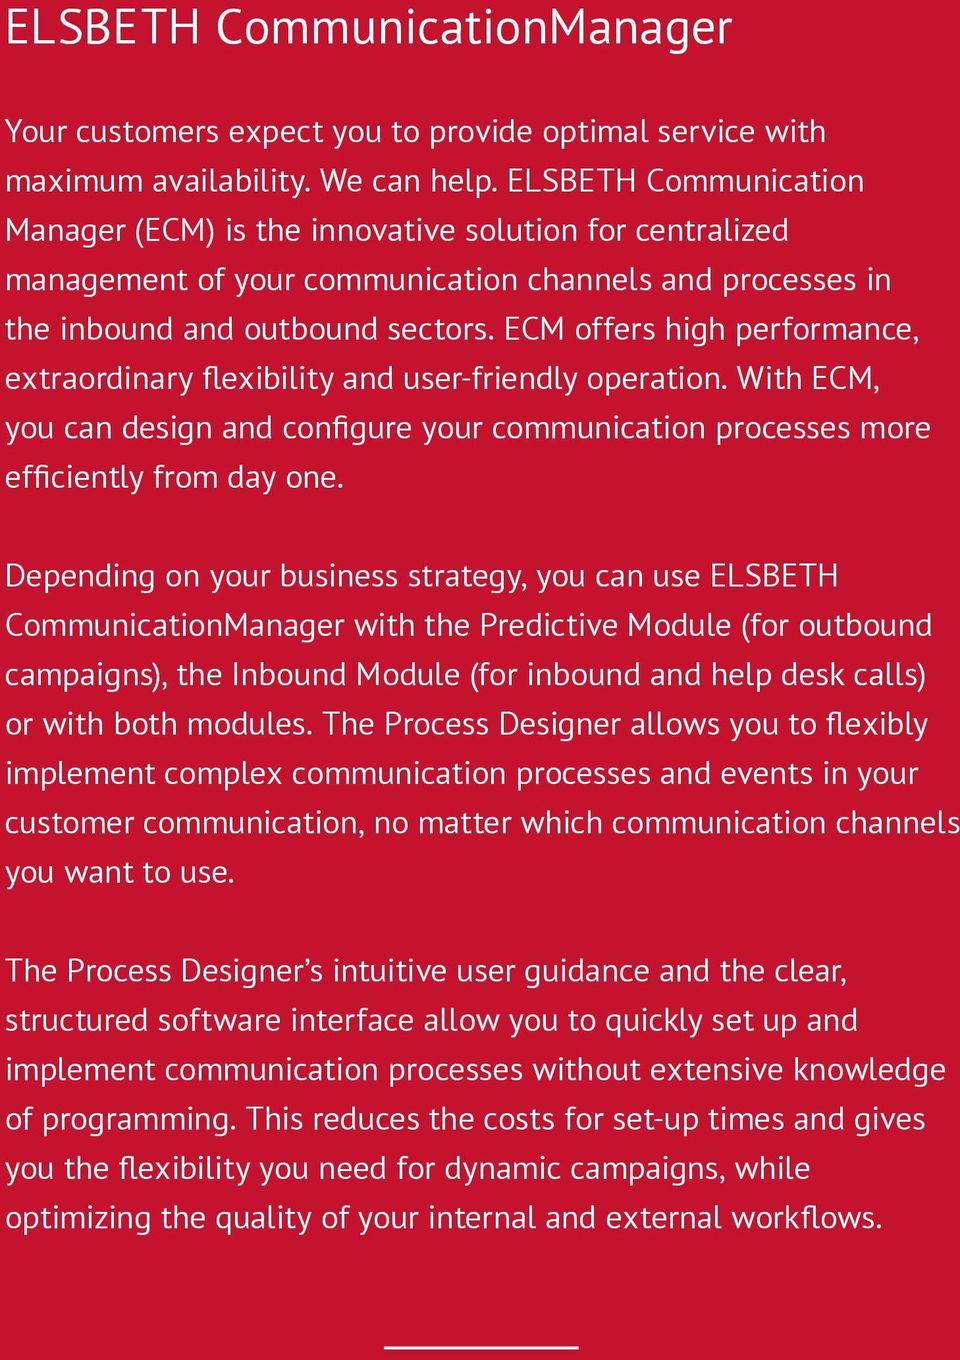 ECM offers high performance, extraordinary flexibility and user-friendly operation. With ECM, you can design and configure your communication processes more efficiently from day one.